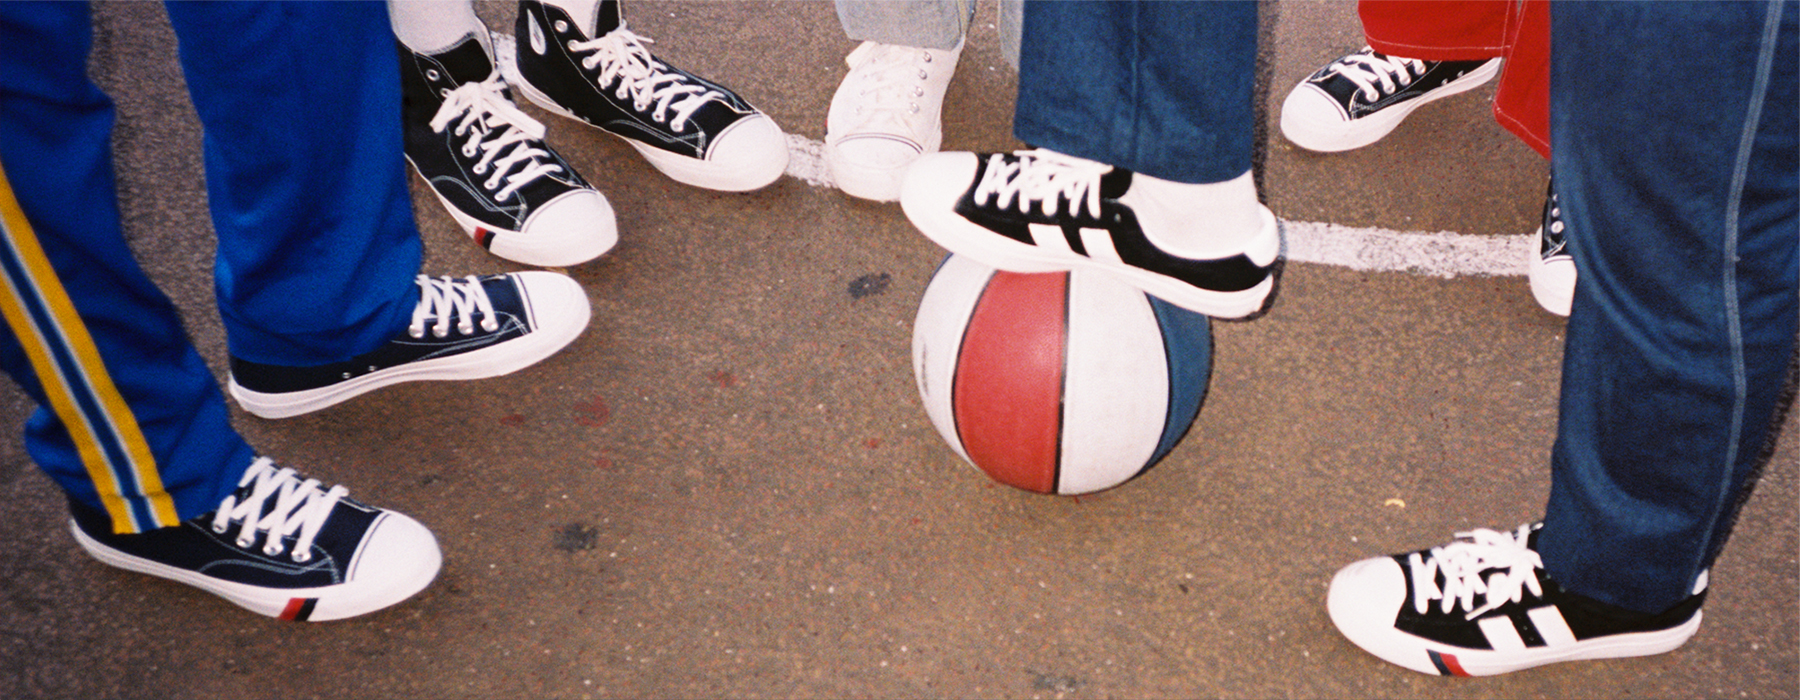 A group of people surrounding a patriotic basketball all wearing pro keds.